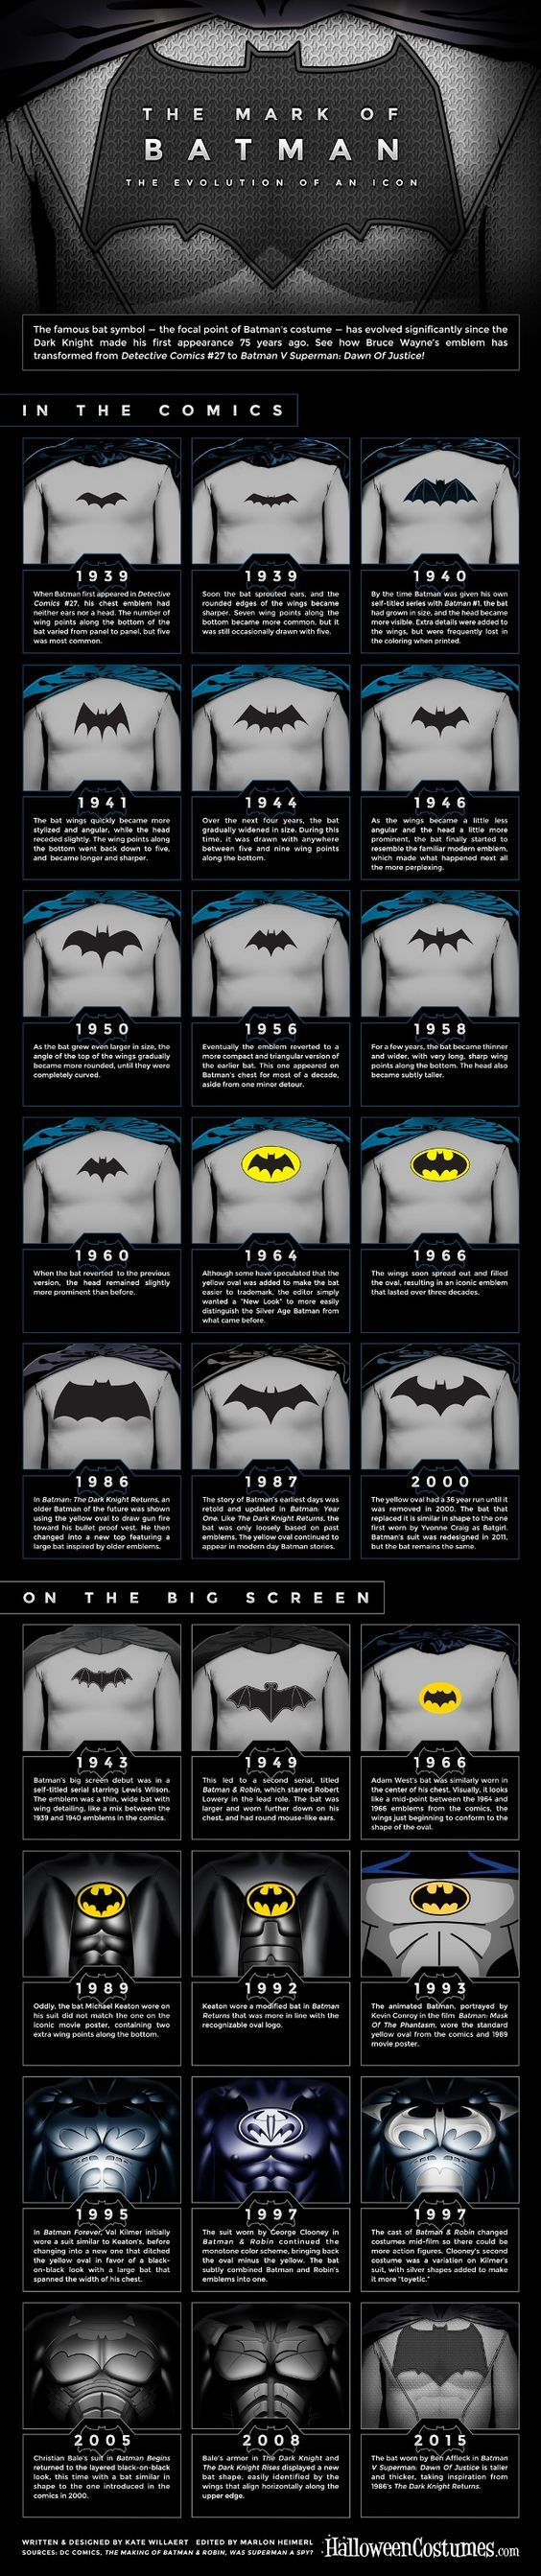 Batman-Infographic-body The Mark of Batman: The Evolution of an Icon designed by Kate Willaert: I really HATE the fact that they put Ben Affleck on this list!!: